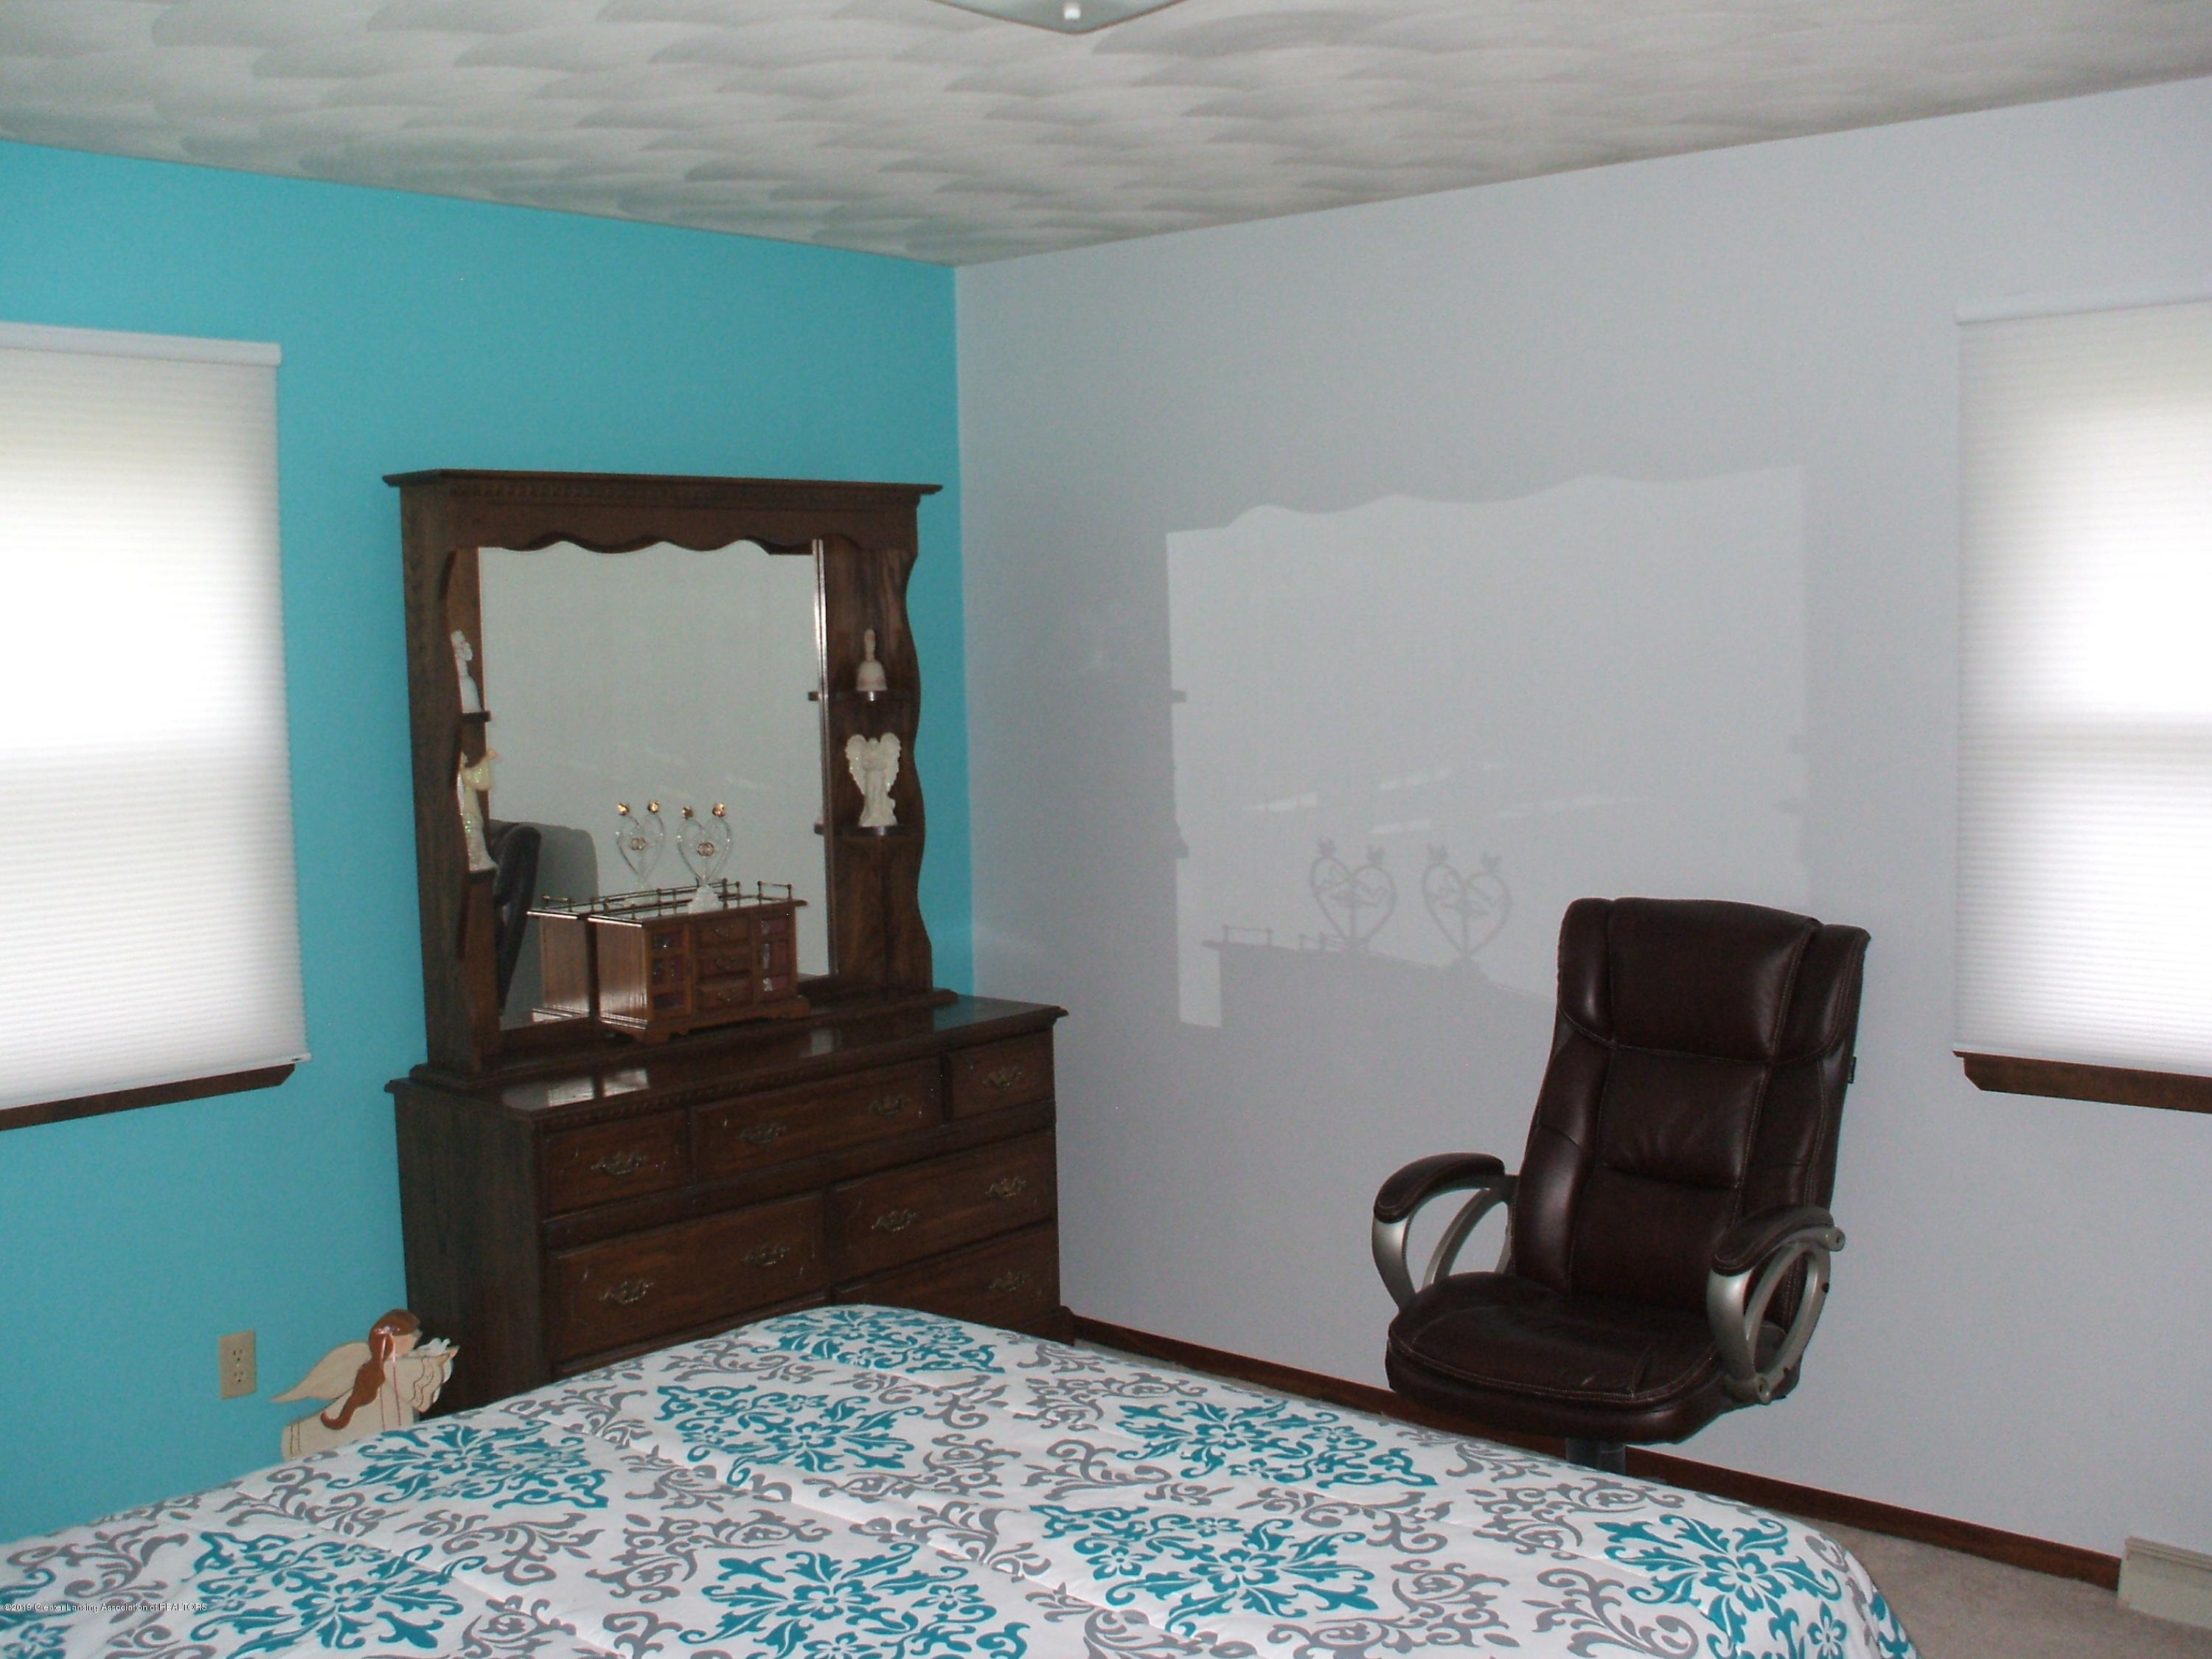 803 W McConnell St - Bedroom - 14